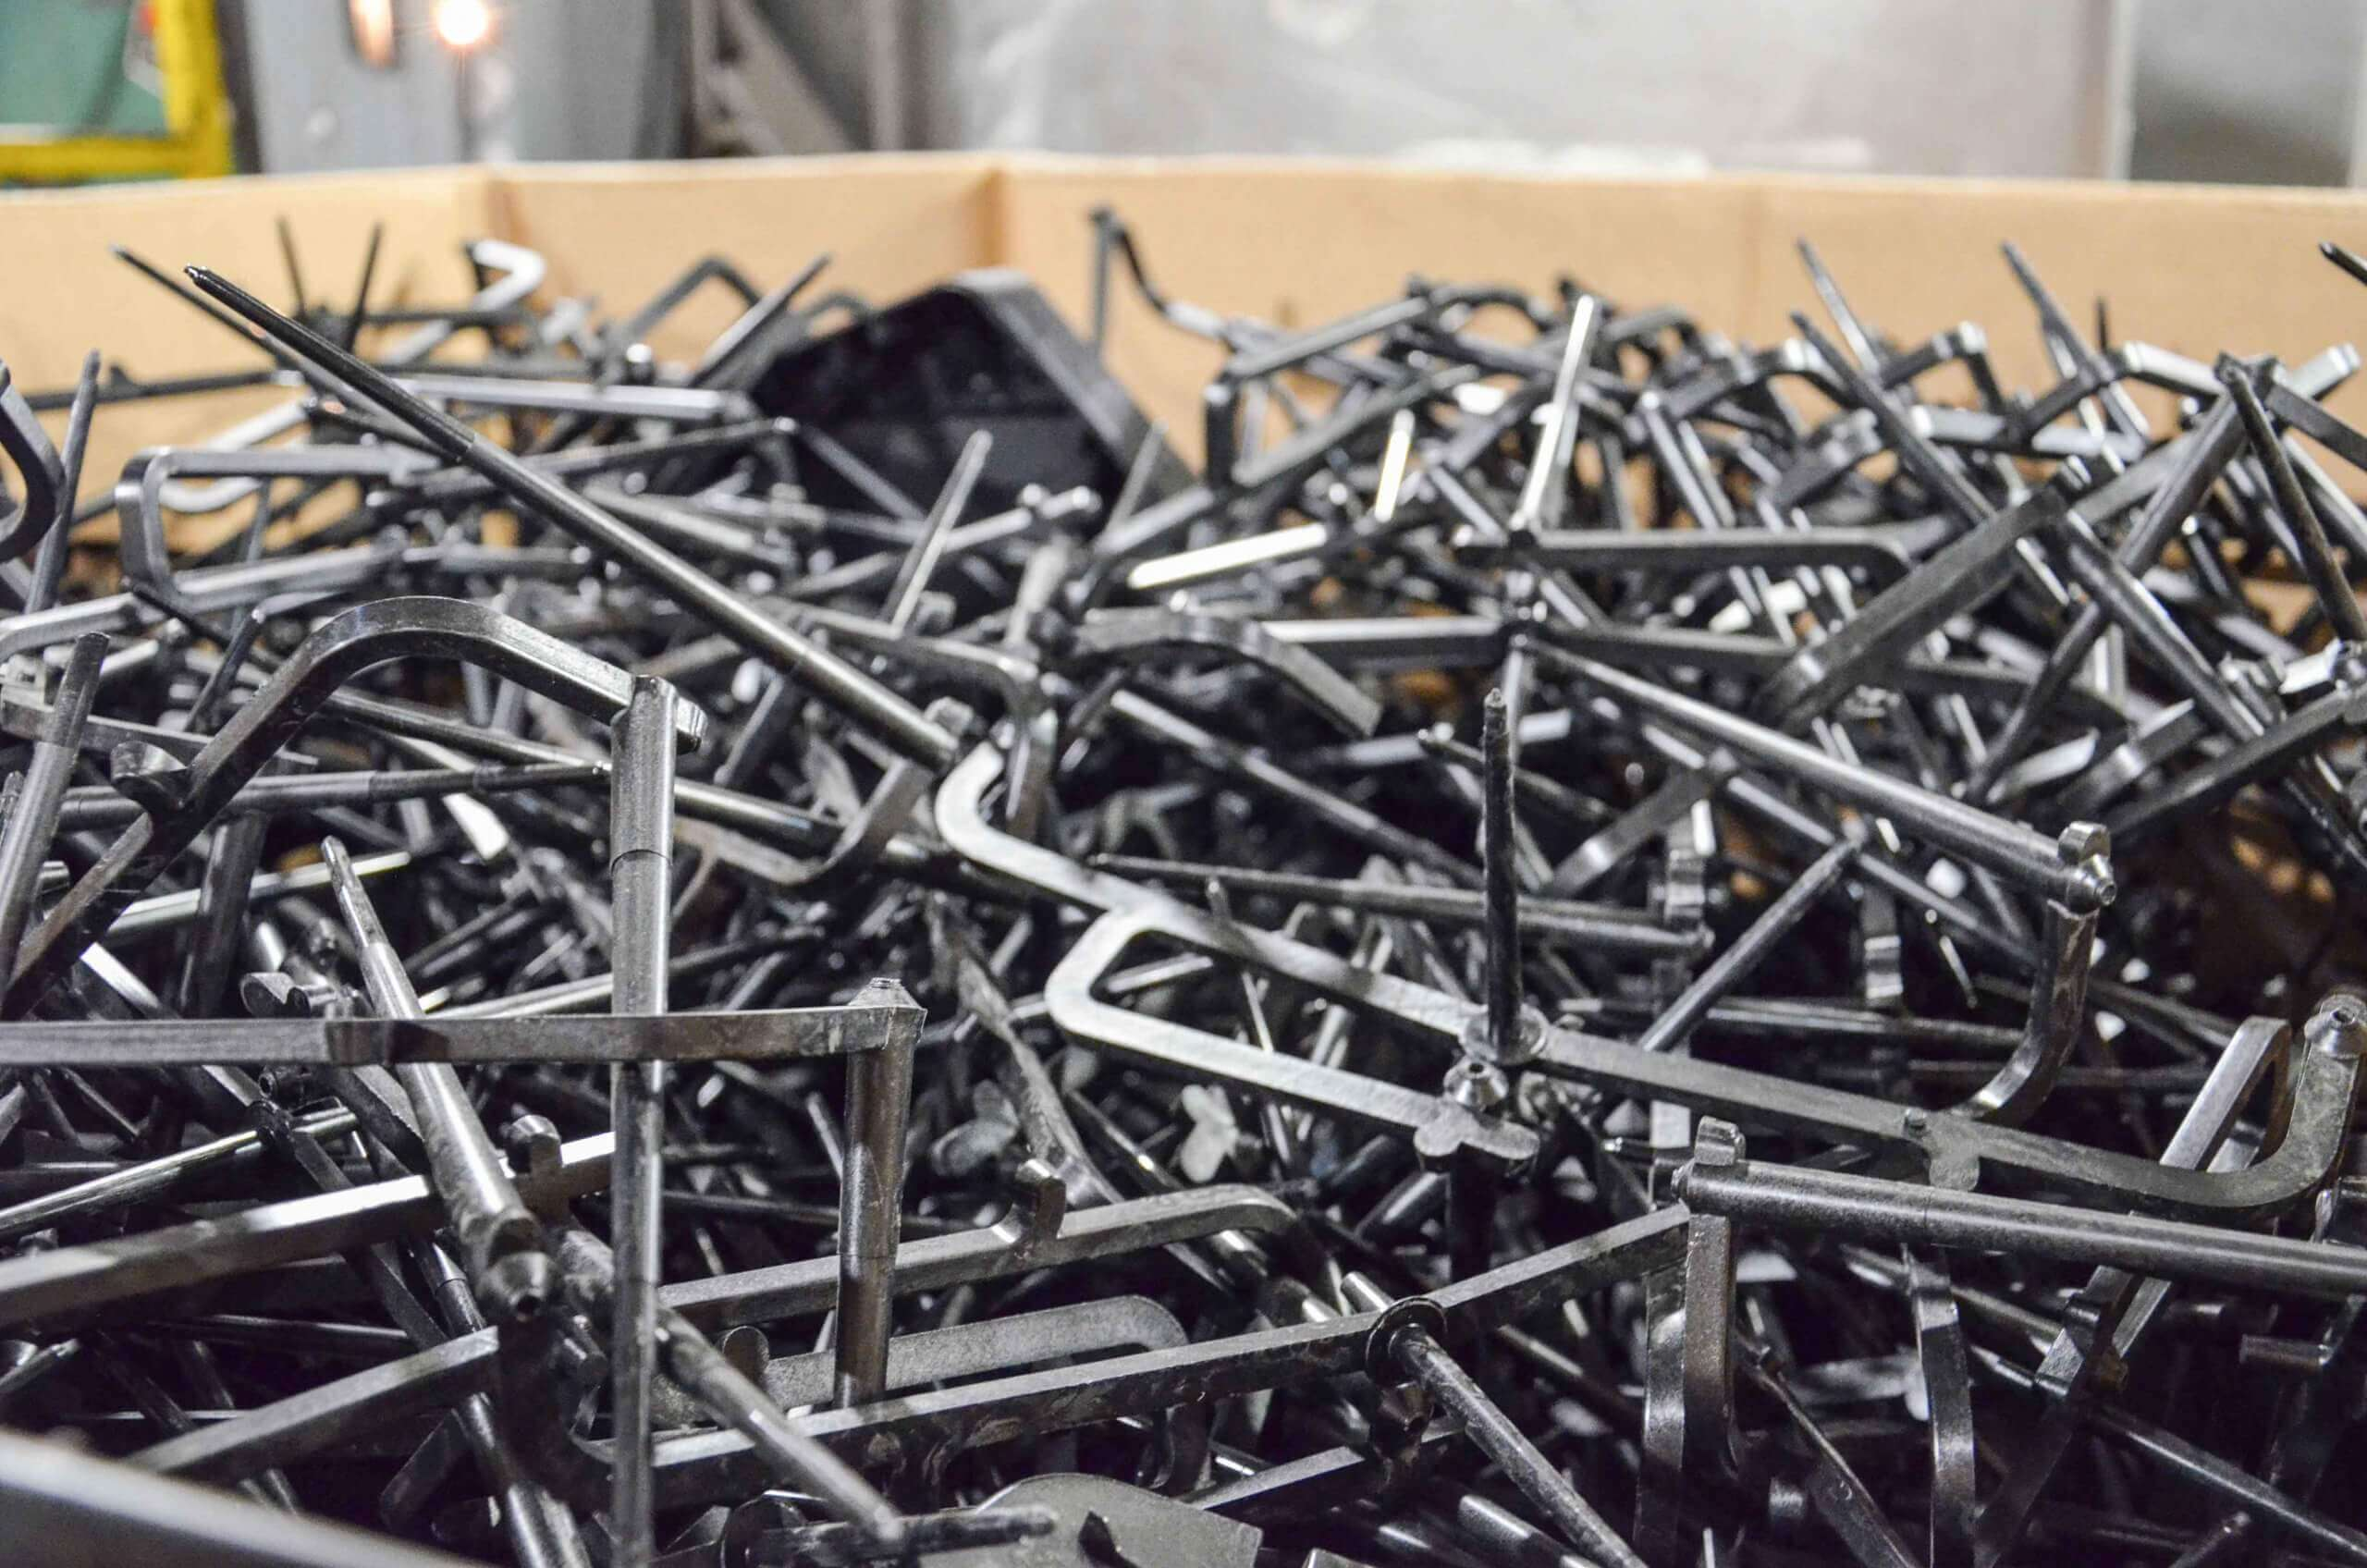 Injection moulding waste is stored in boxes until shredding